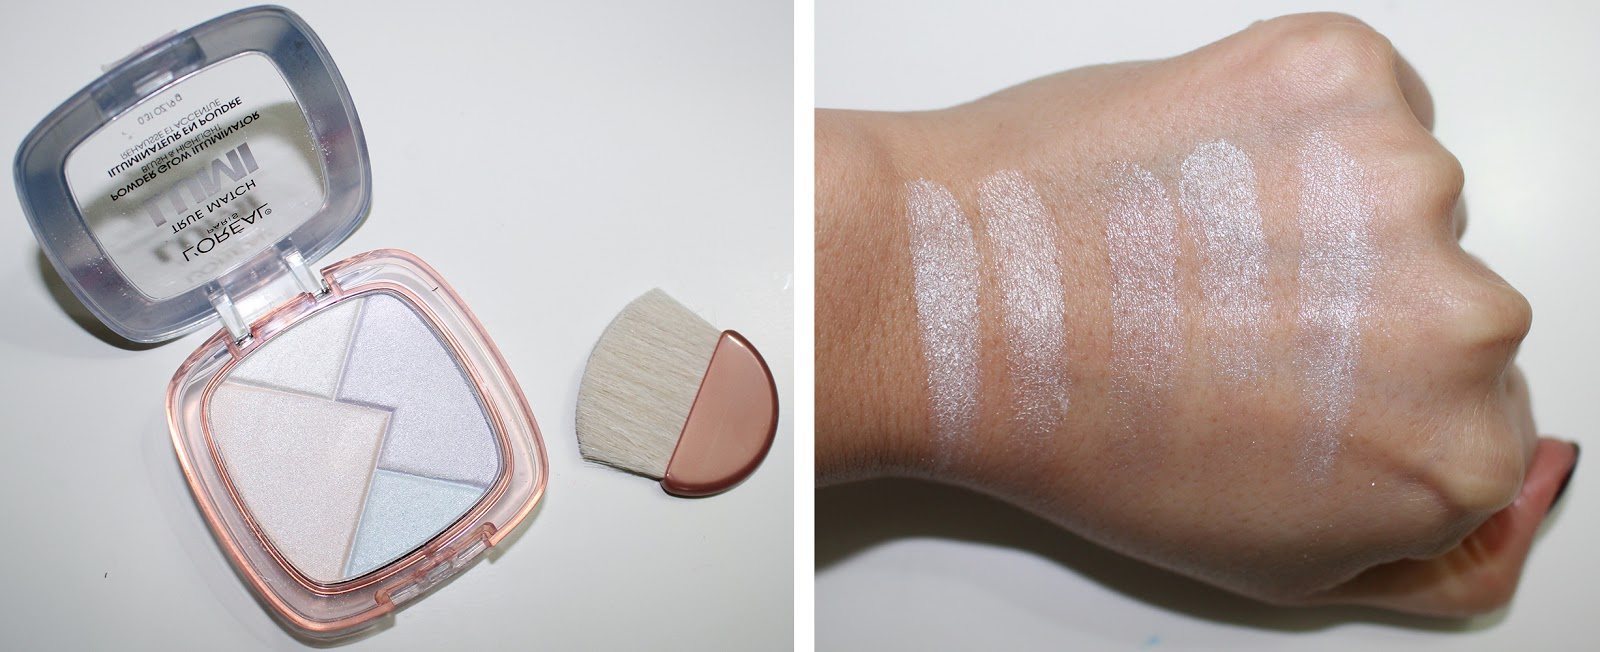 Highlighters Loreal True Match Lumi Glow Illuminators Powder Perfecting Now For The Rose Color I Personally Wouldnt Wear Liquid As A Face Primer Because It Does Leave Rosy Tint To Skin Which Do Not Like